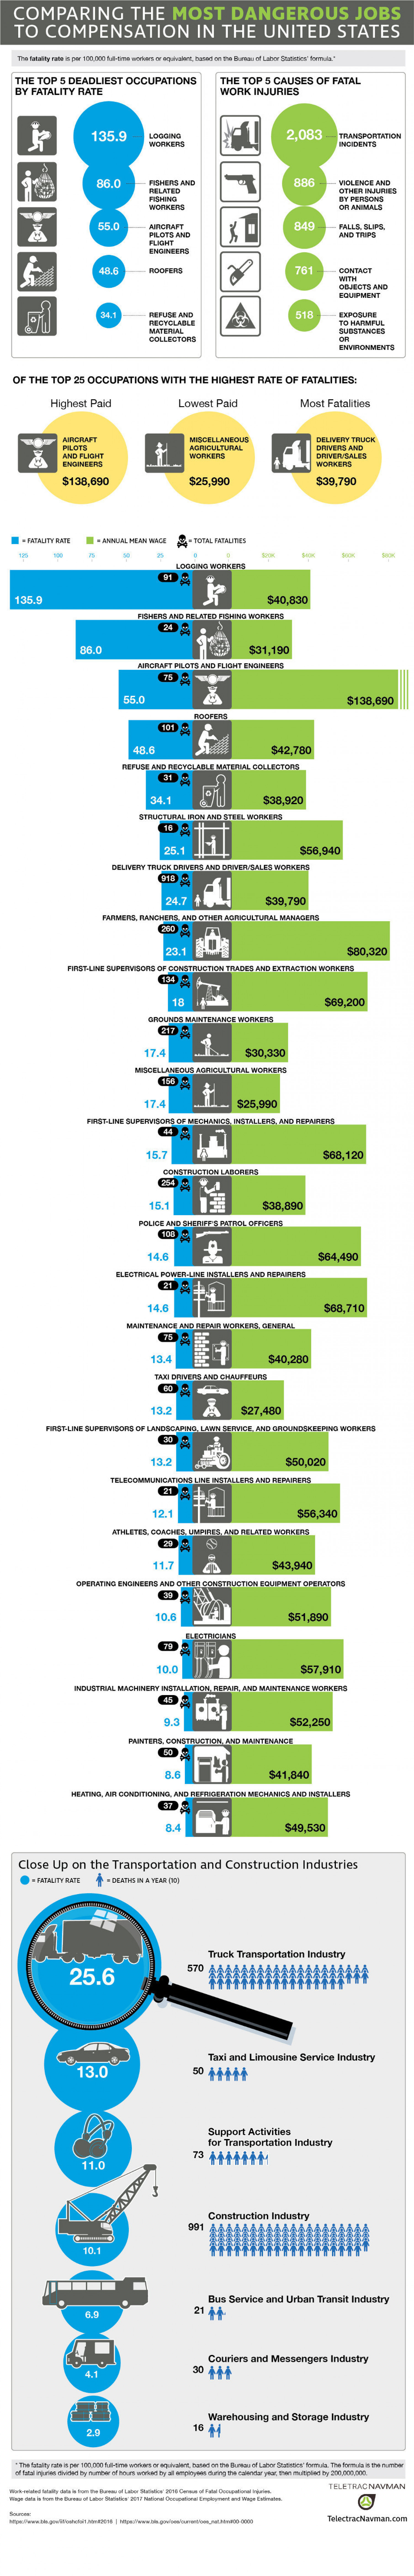 The Most Dangerous Jobs in the United States Infographic